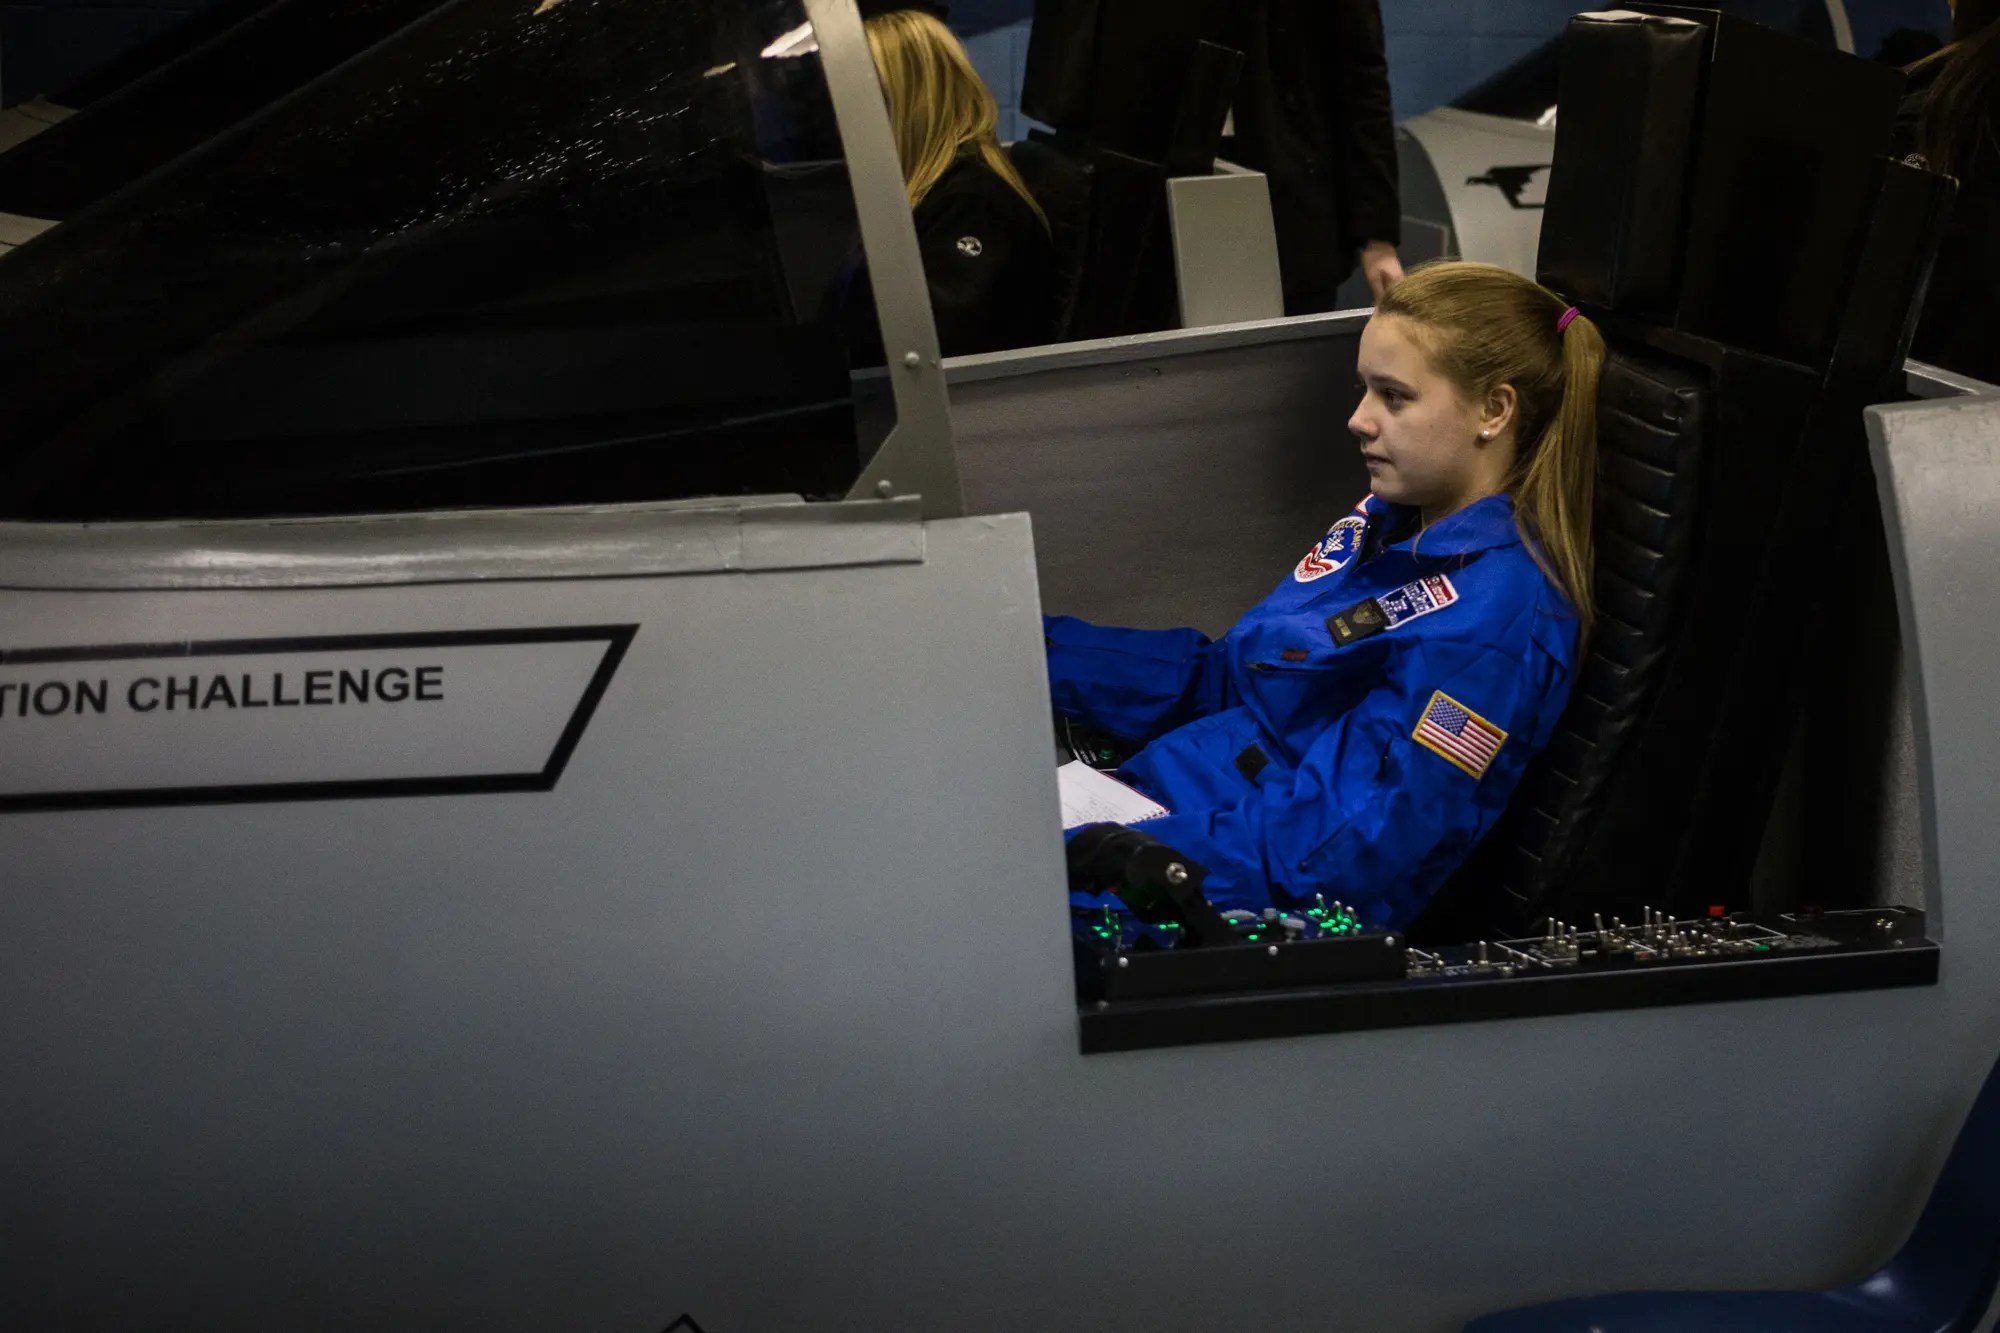 Morristown Teen Goes For Moon Walk At Nasa Space Camp